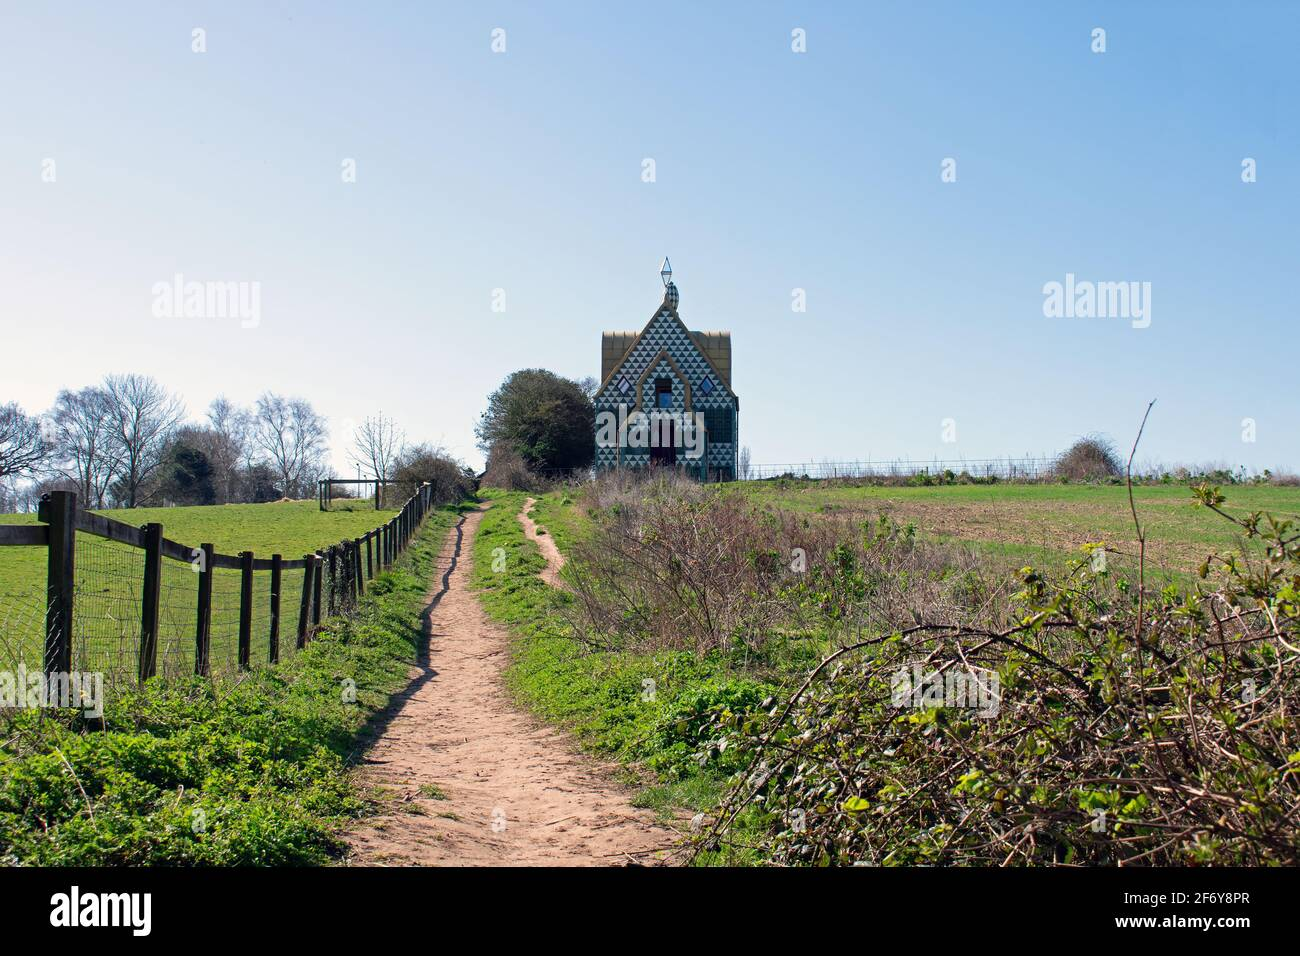 Walking along a public footpath up the hill towards A House For Essex by Grayson Perry in Wrabness, Essex, UK Stock Photo